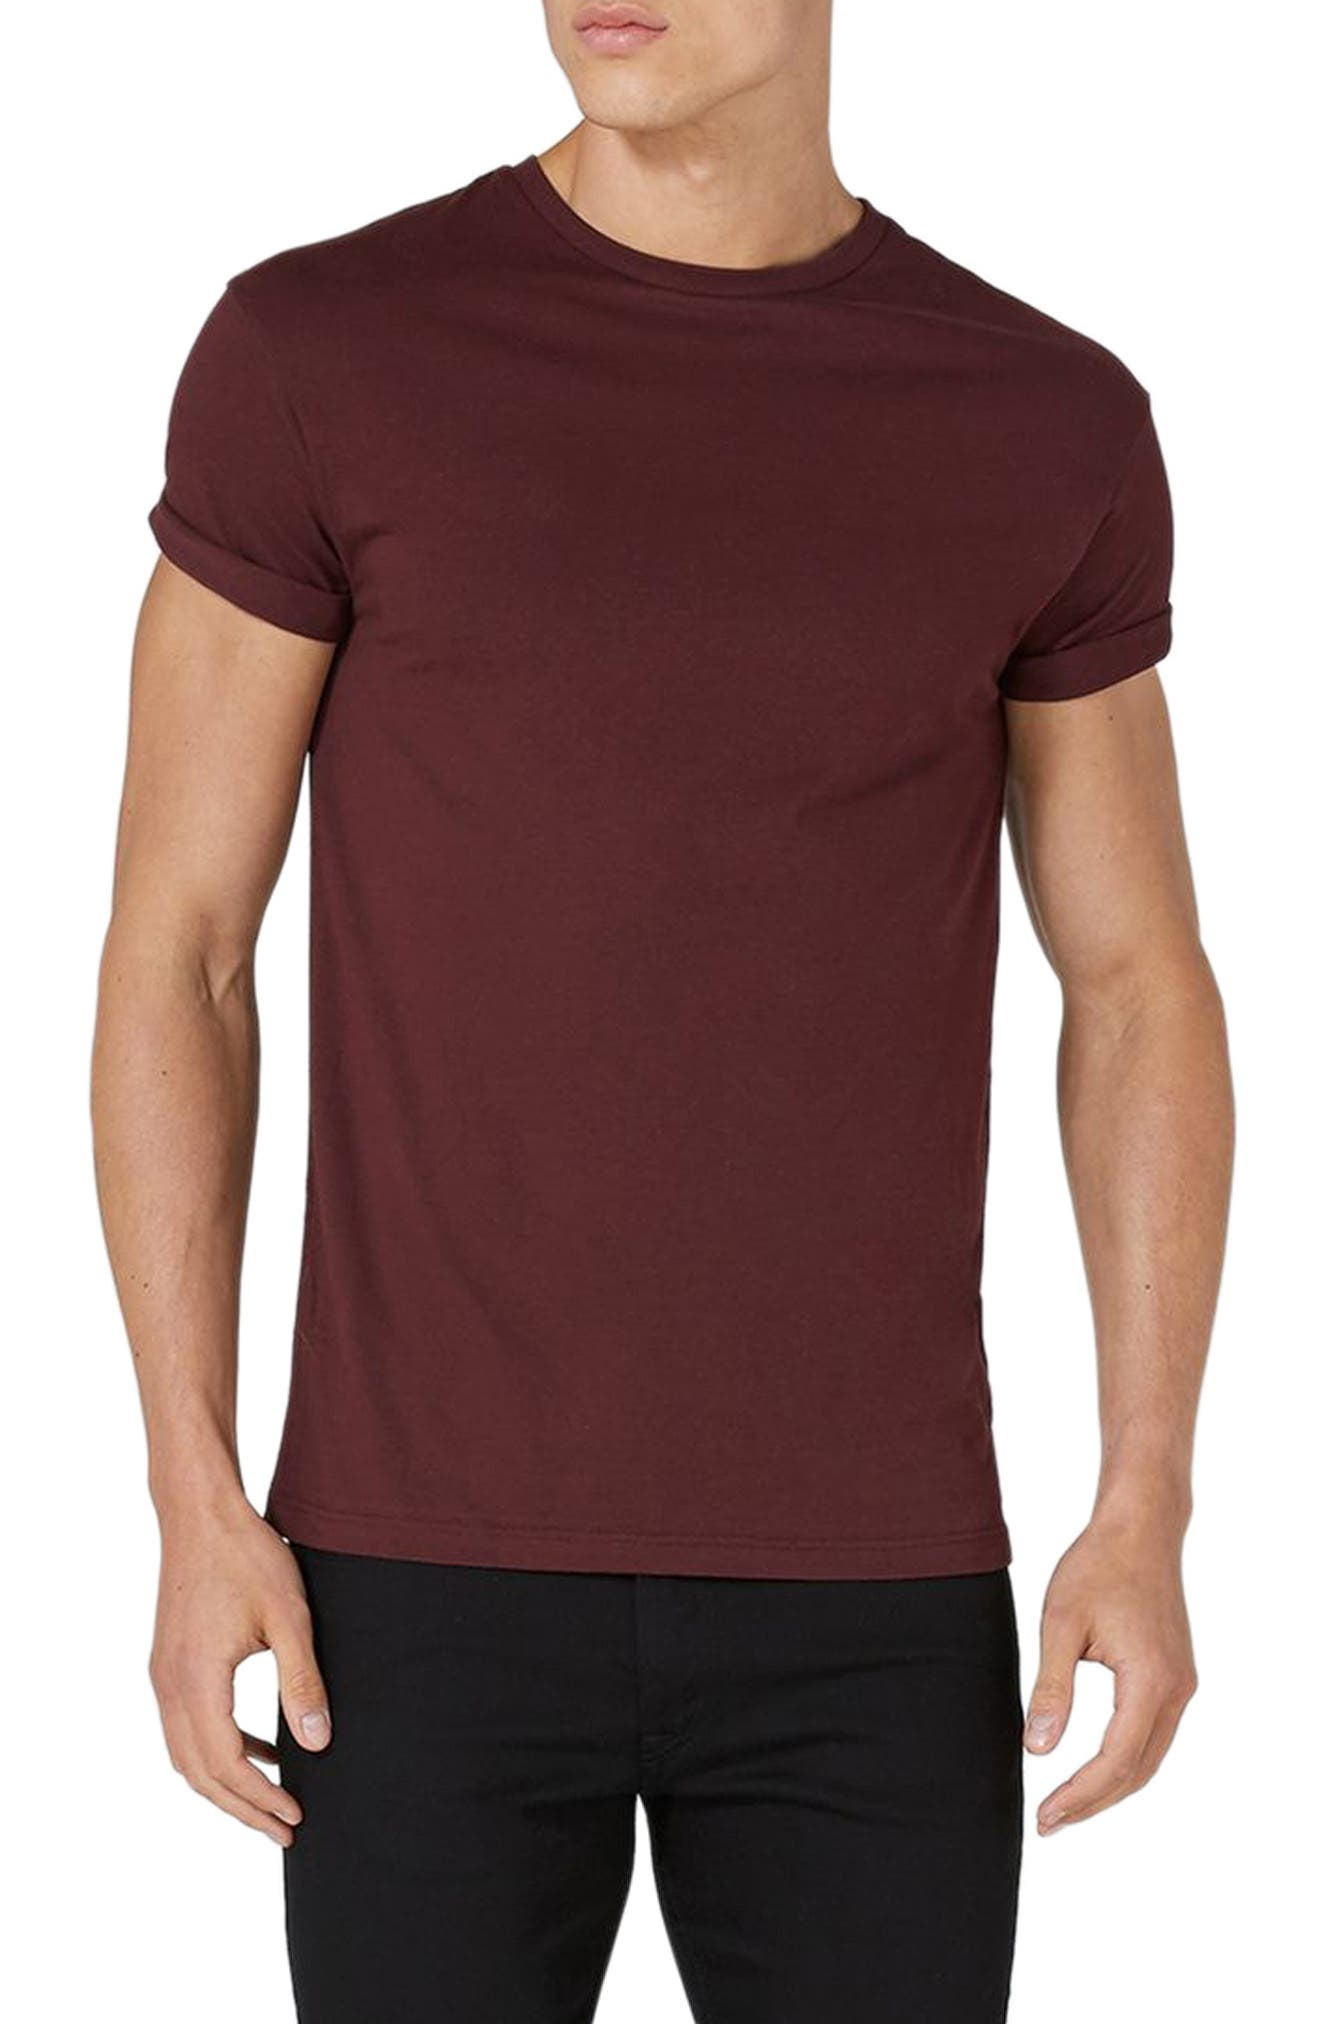 Muscle Fit Roller T-Shirt,                         Main,                         color, Burgundy